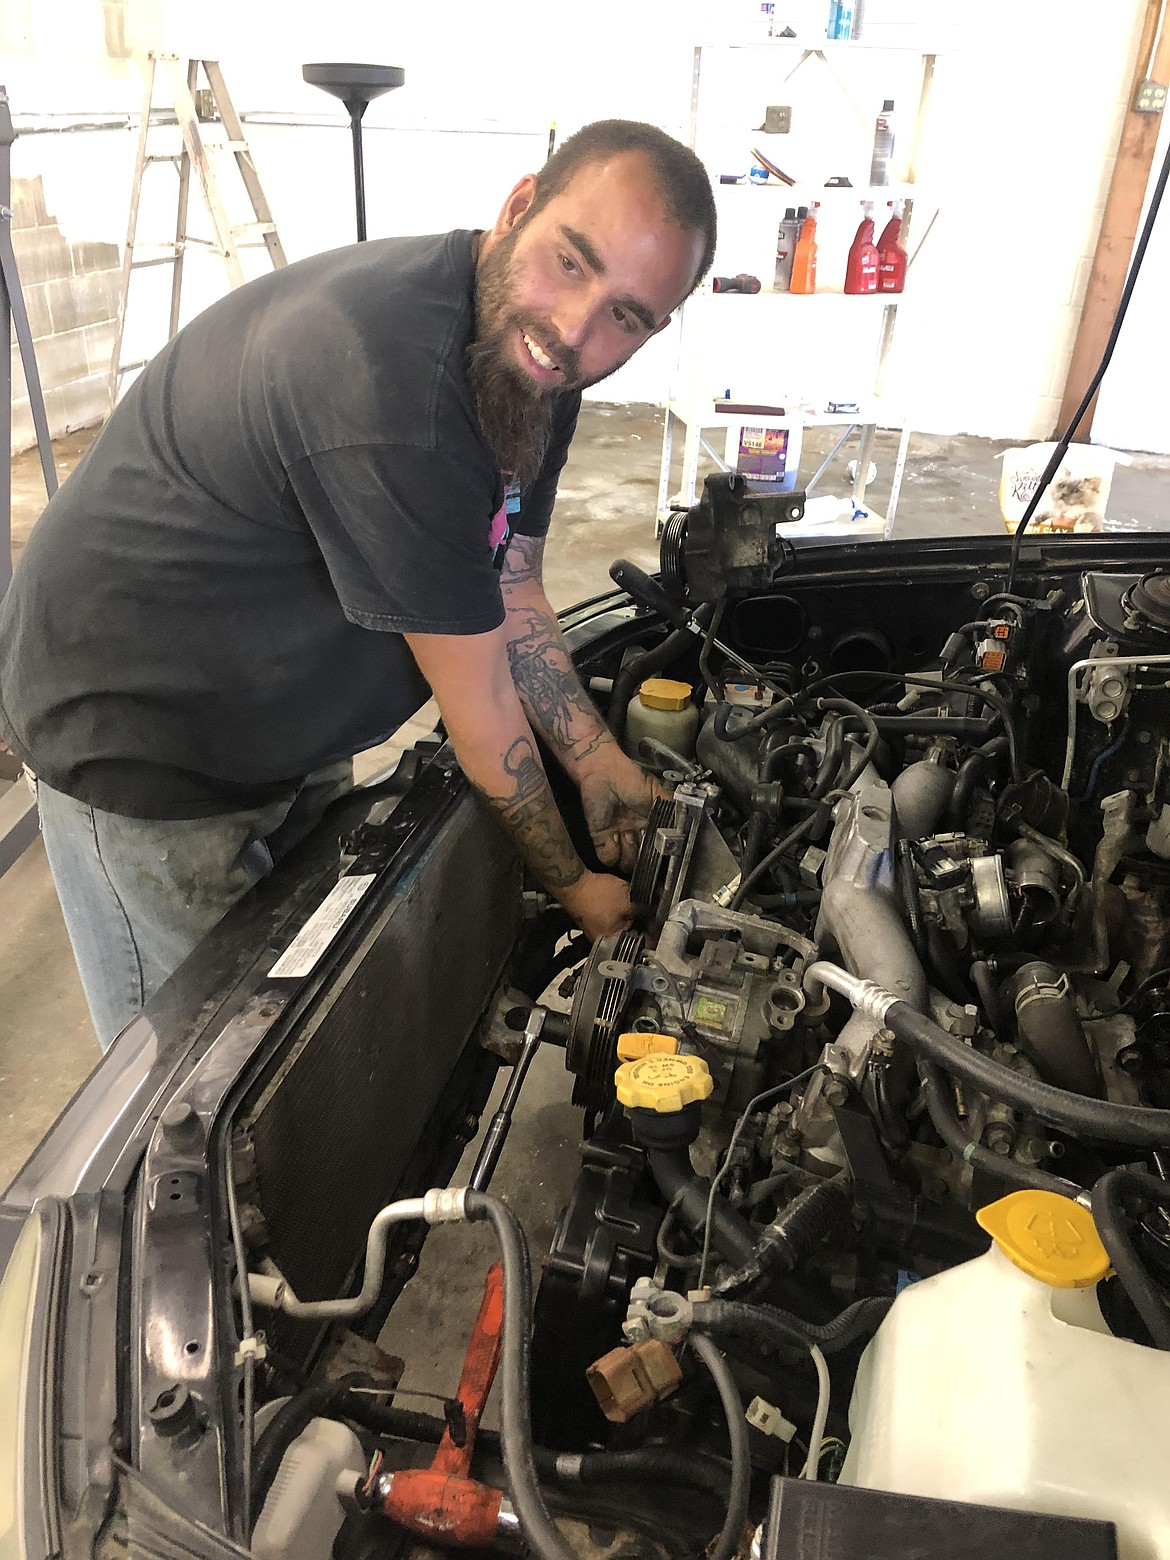 Courtesy photo Michael Russo works on a vehicle at Subee's auto repair and classic restoration at 1400 Best Ave. in Coeur d'Alene.